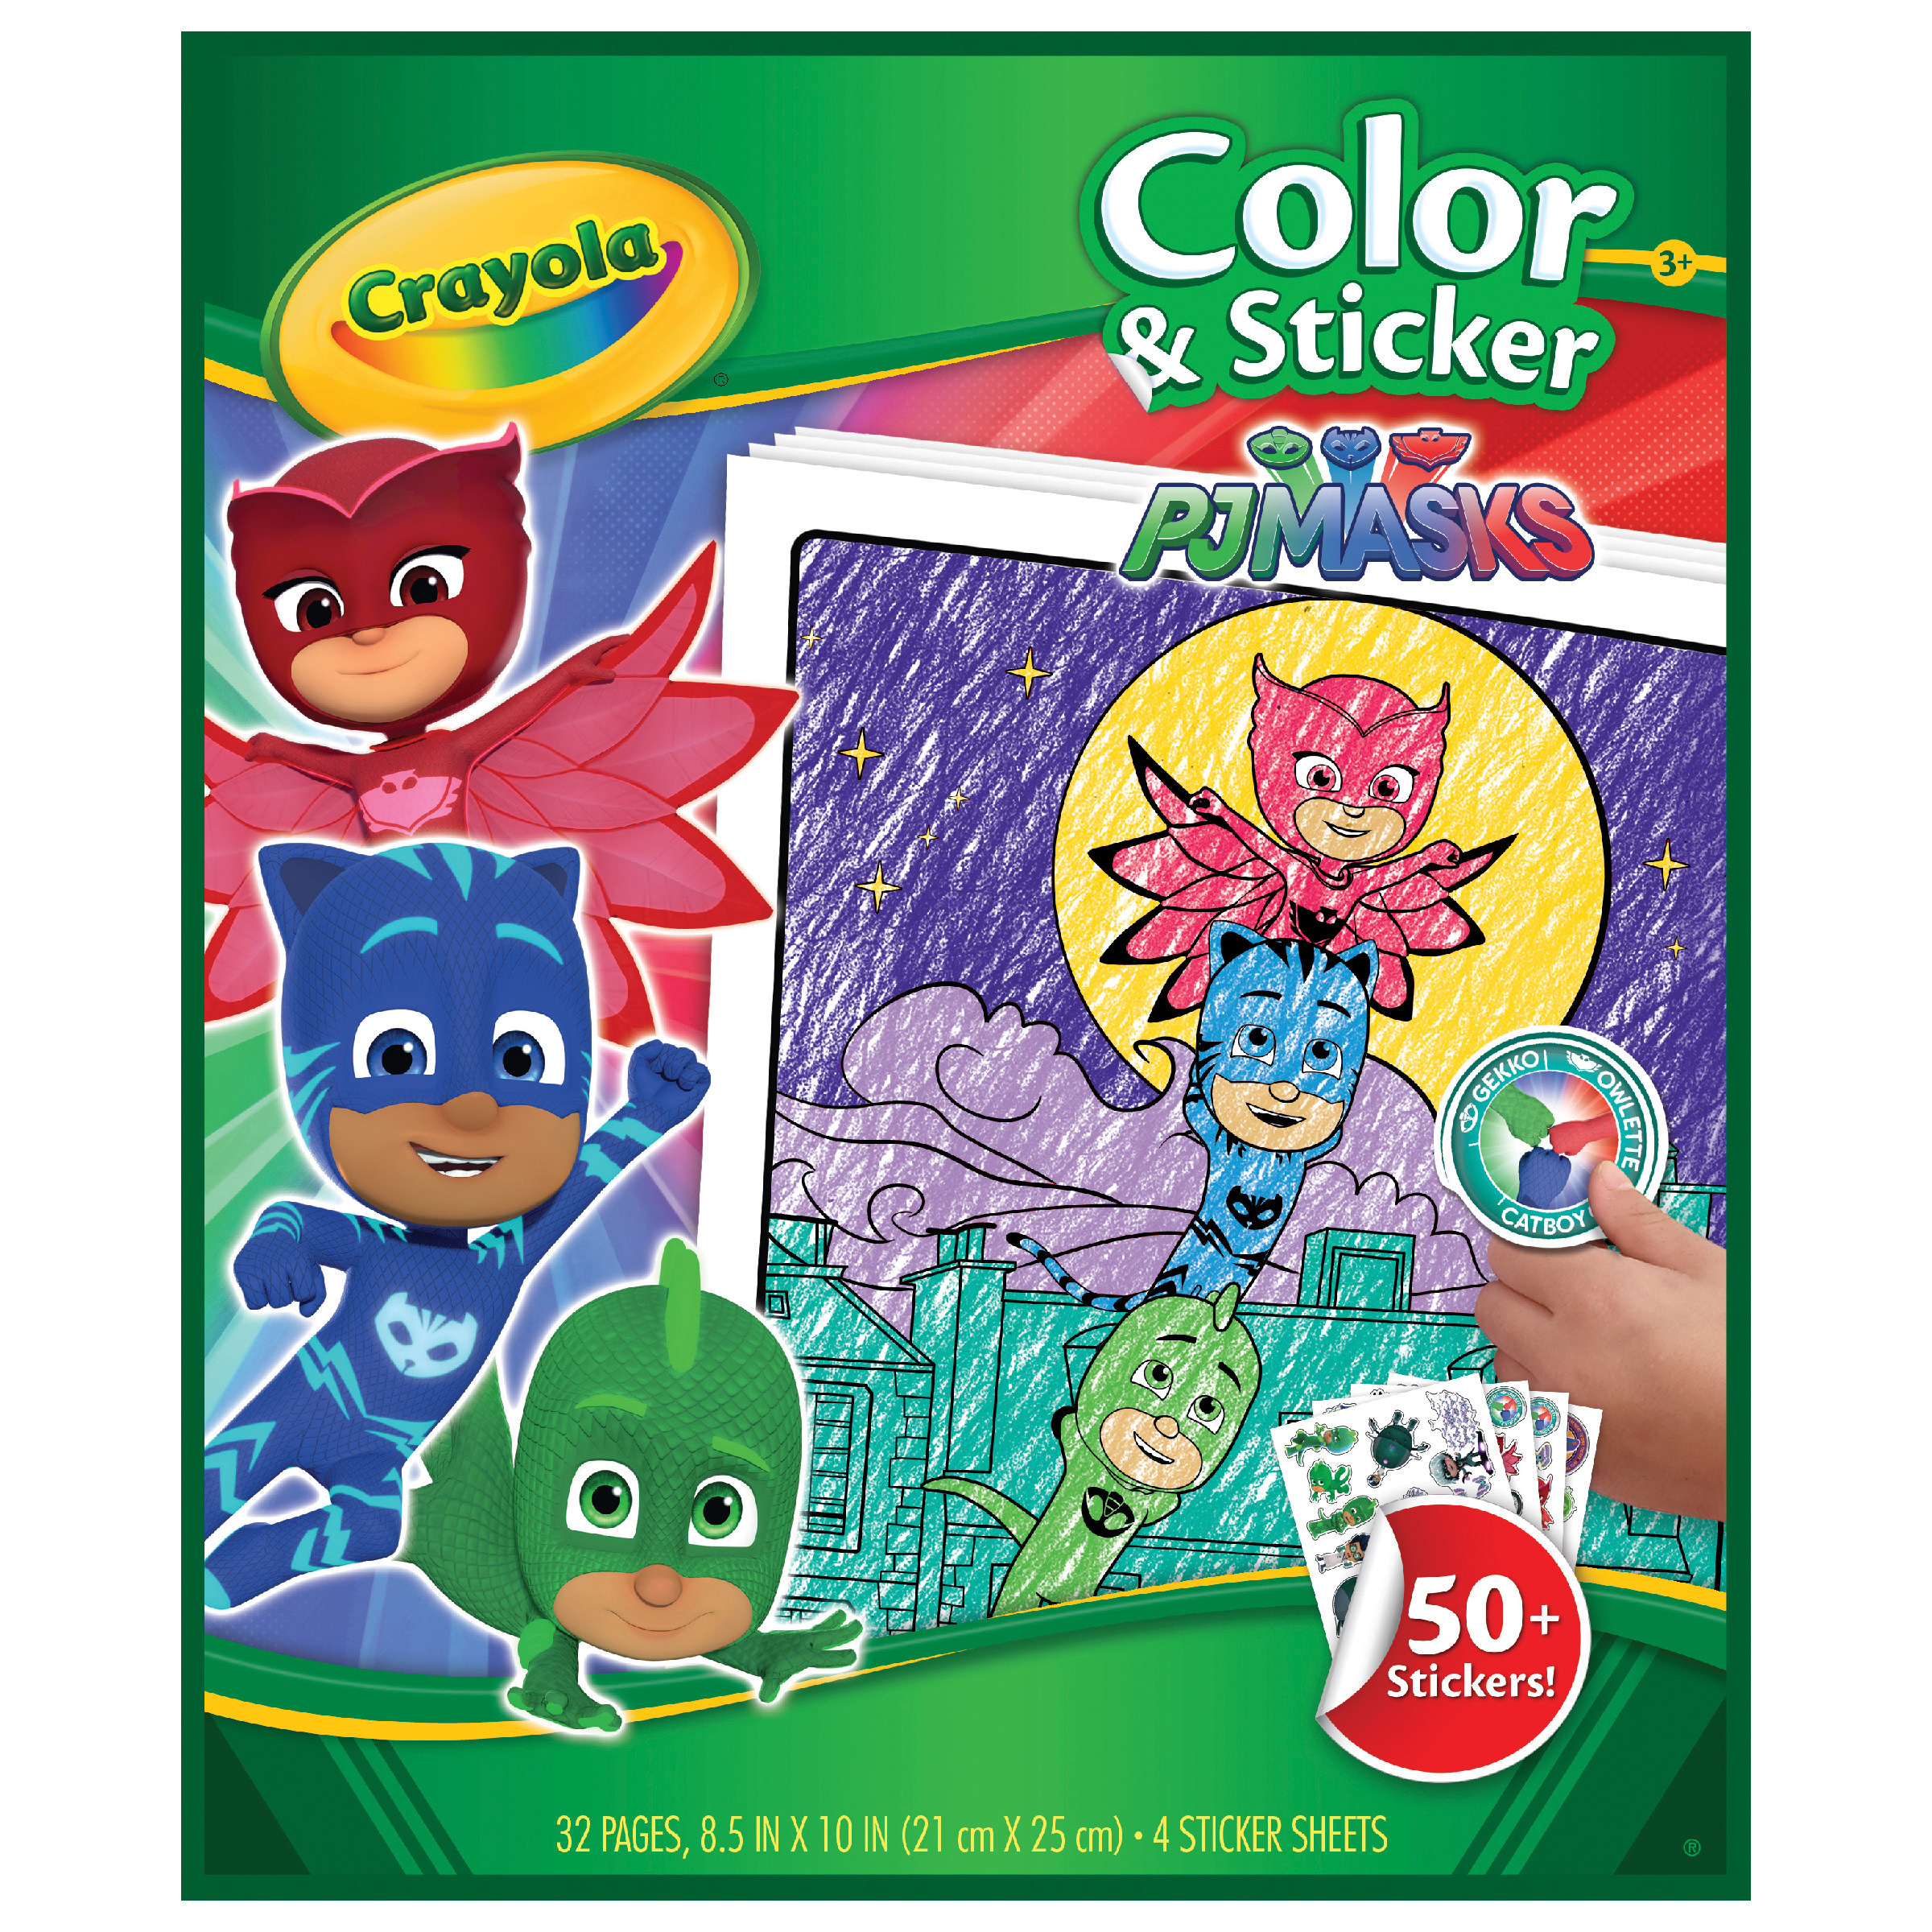 Crayola Pj Masks Color And Sticker Book Over 50 Stickers At Toys R Us